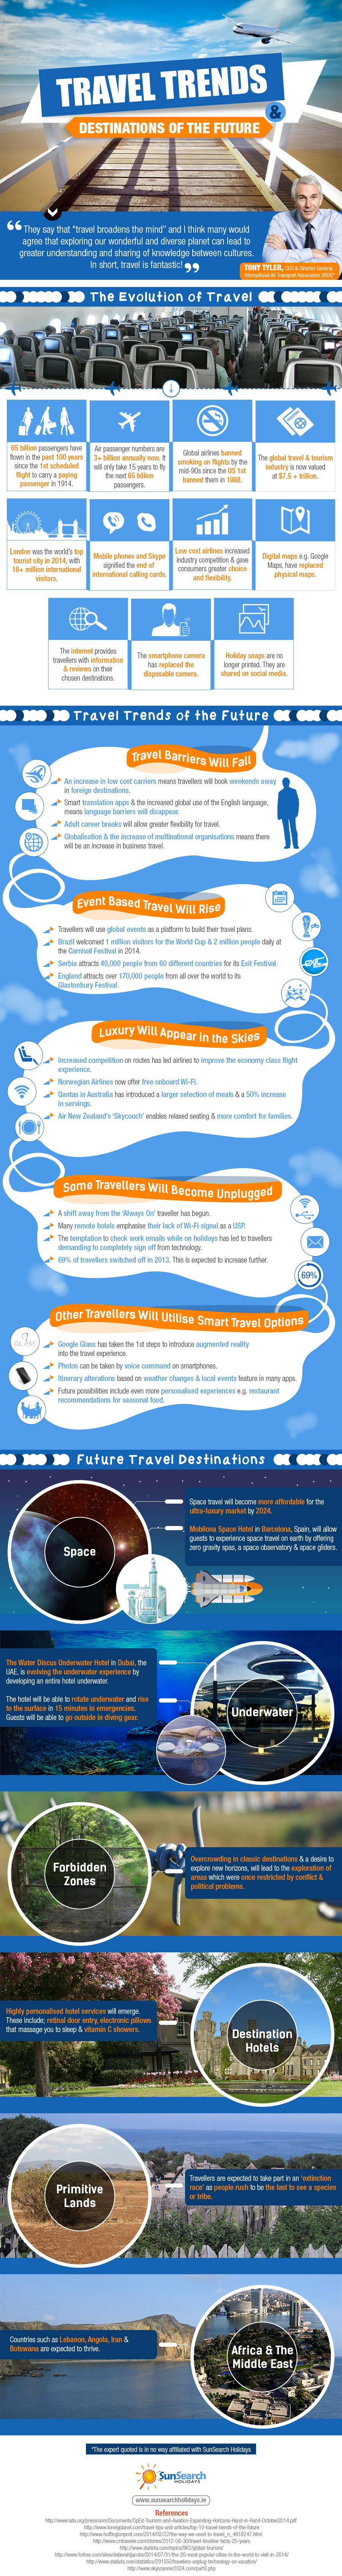 Travel Trends and Destinations of the Future [INFOGRAPHIC]